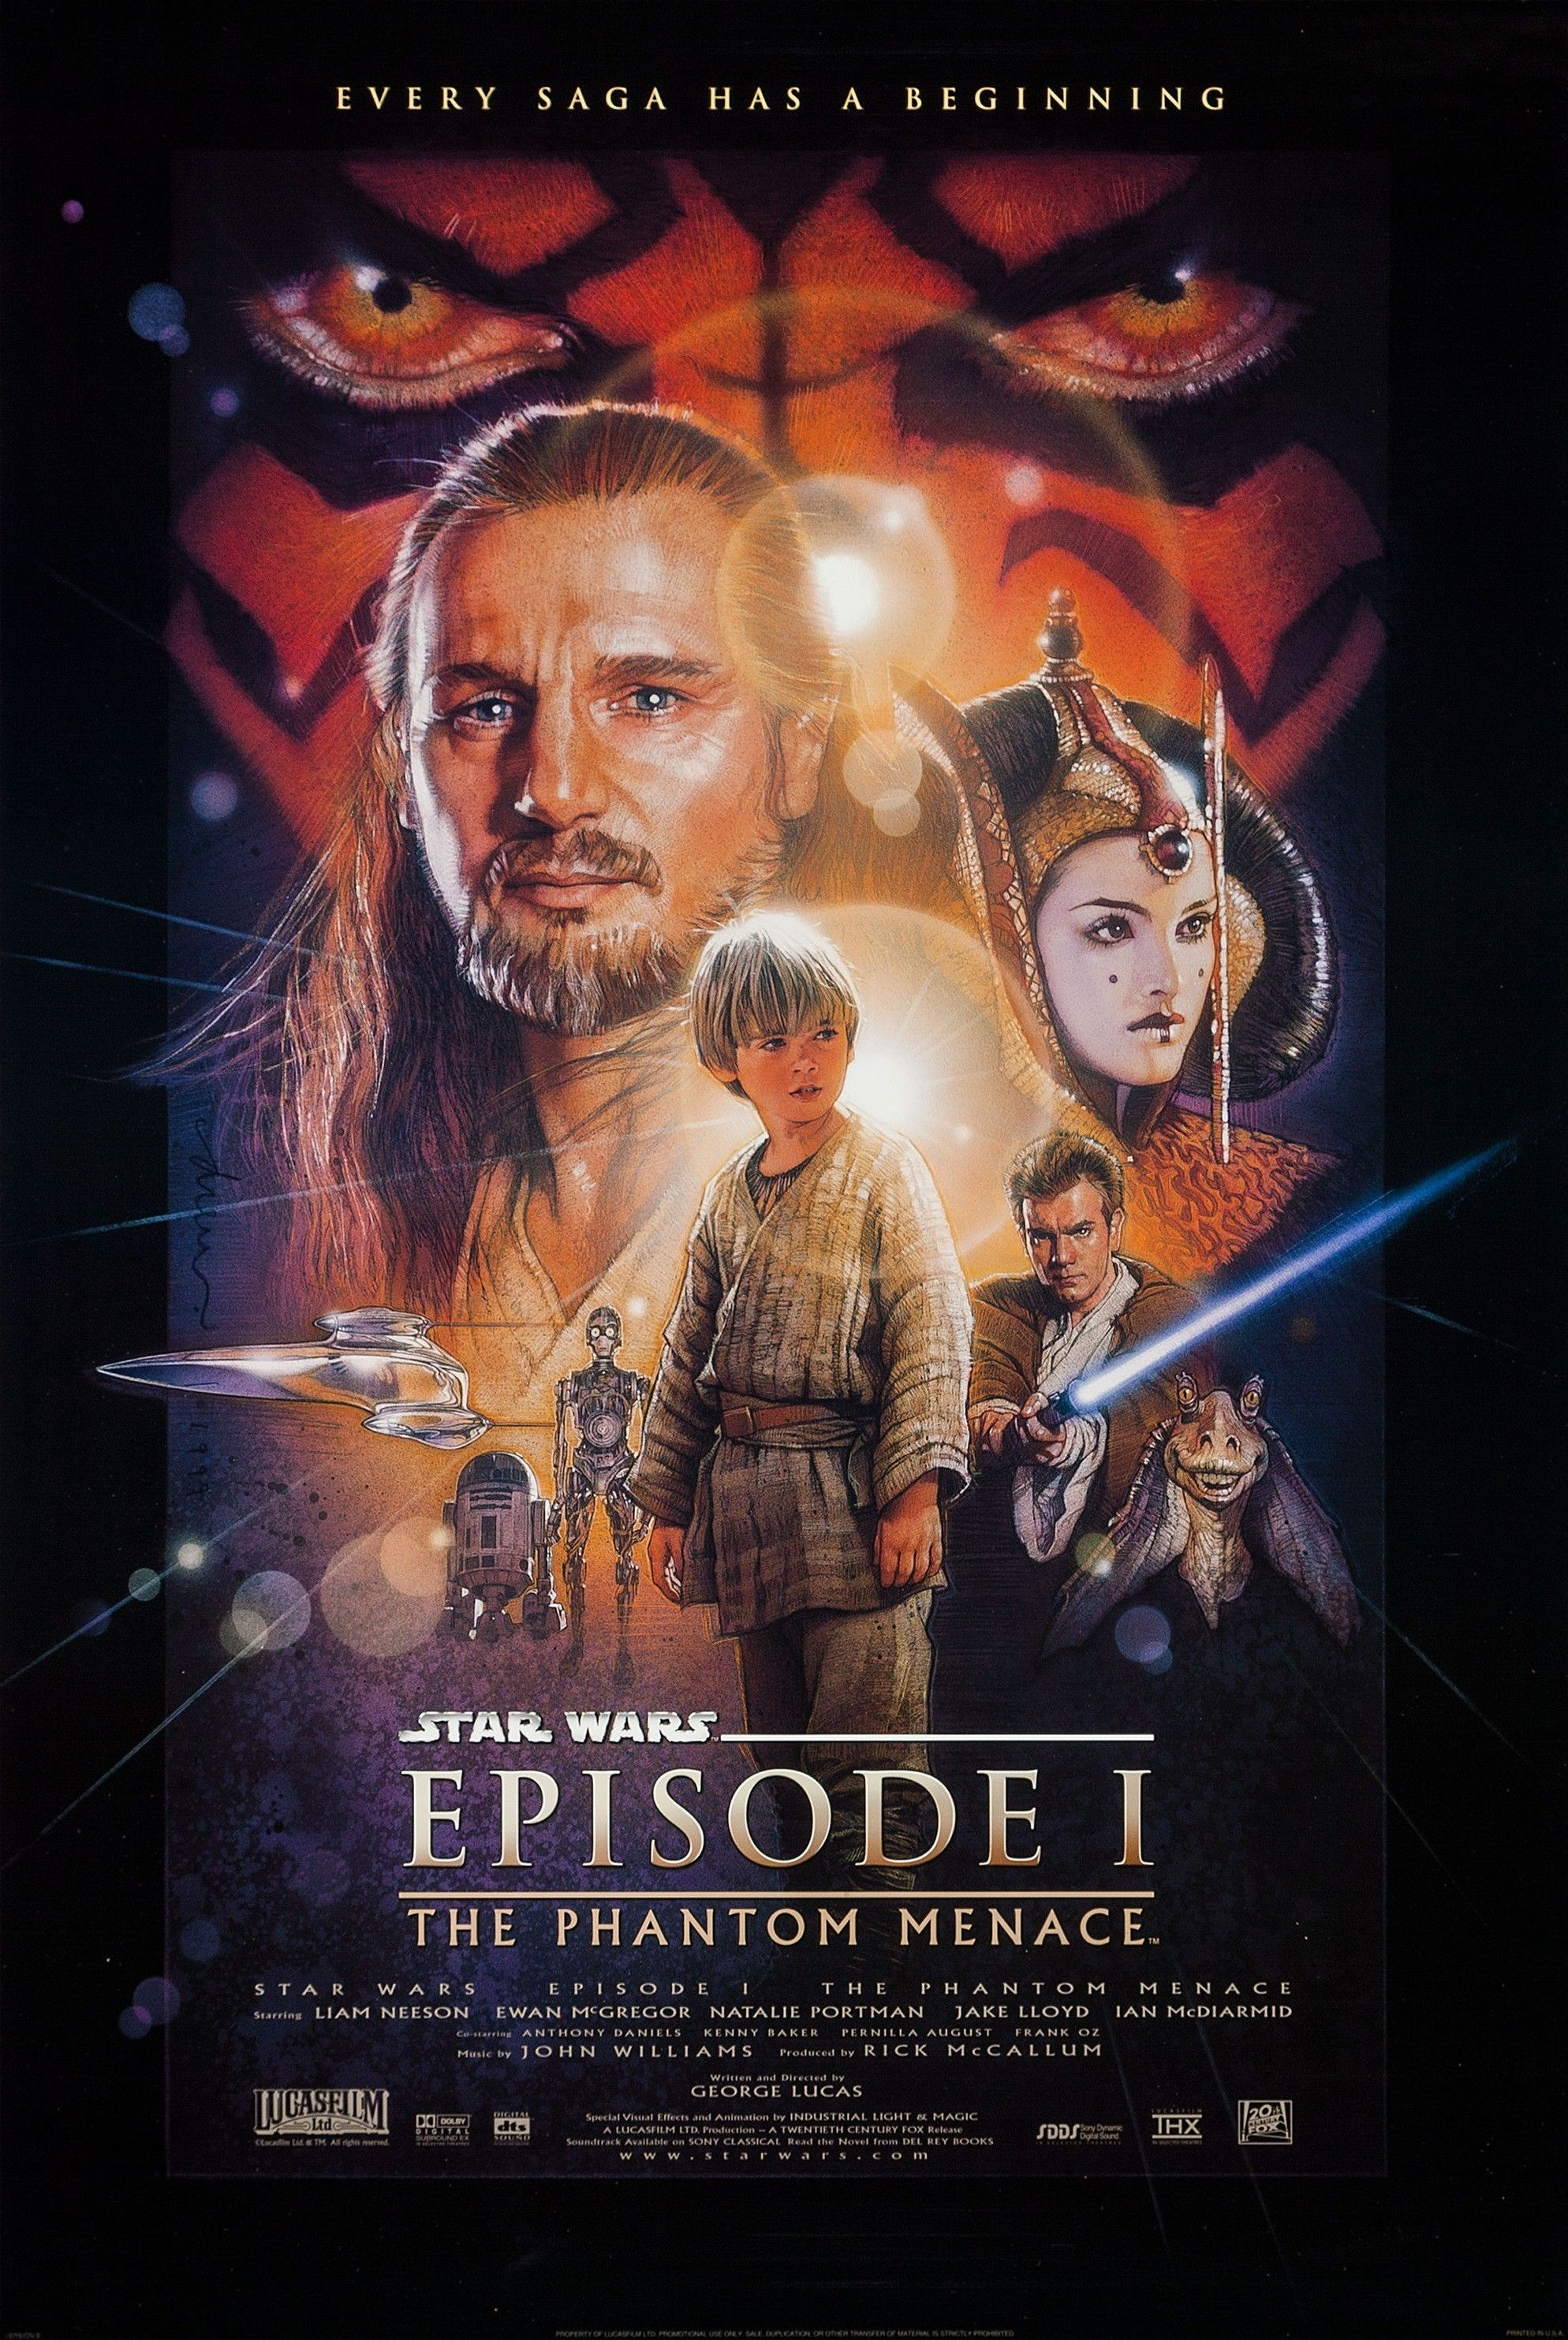 Star Wars Episode I The Phantom Menace Still Haunts My Dvd Cabinet 20 Years Later Musings Of A Middle Aged Geek